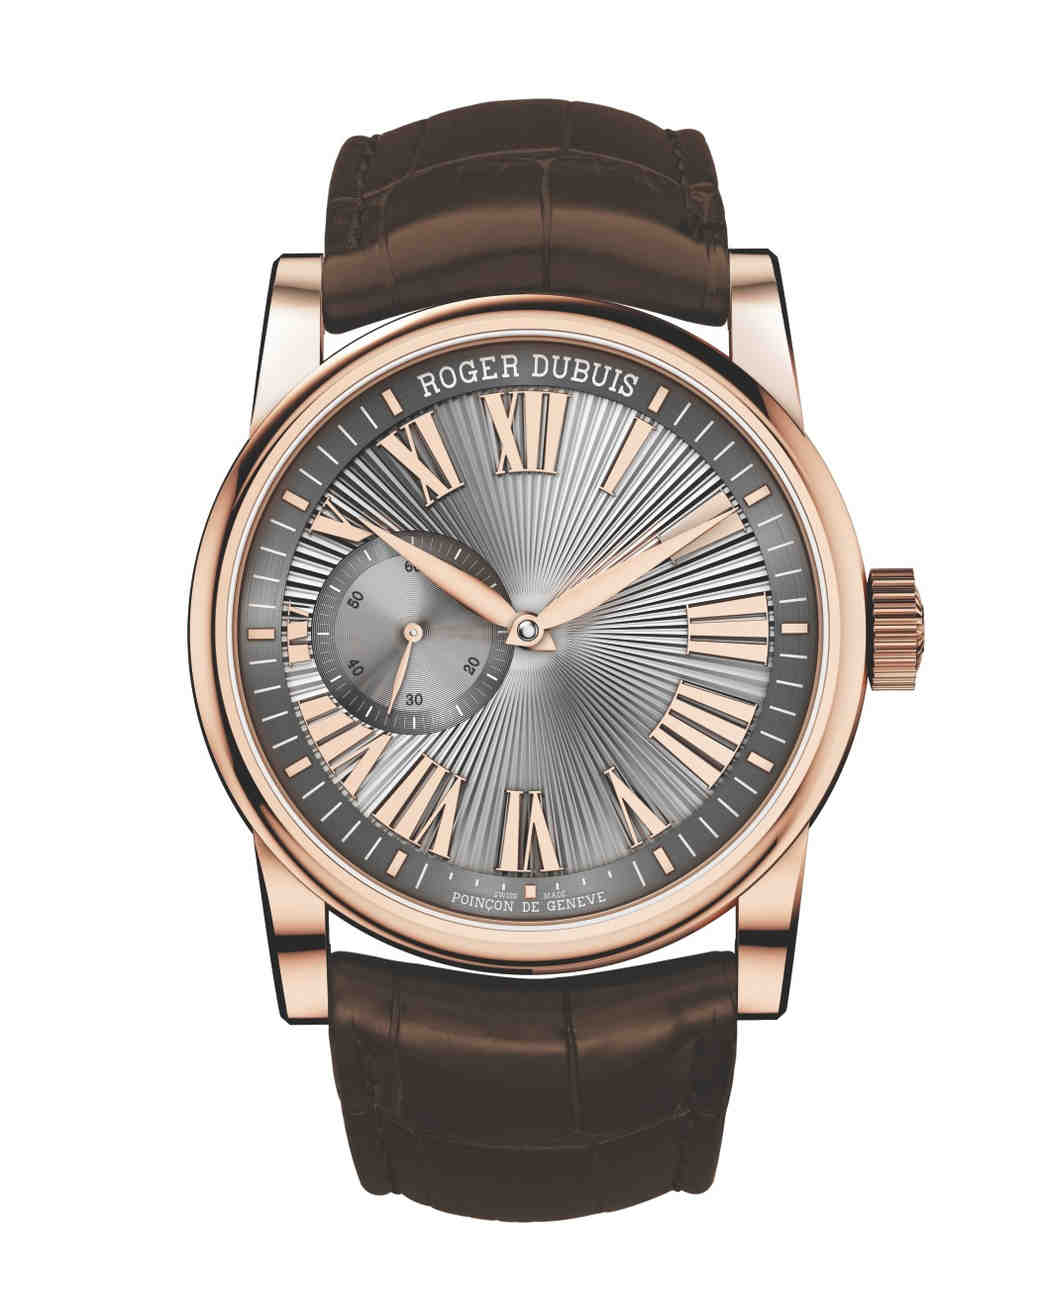 Roger Dubuis Hommage Watch